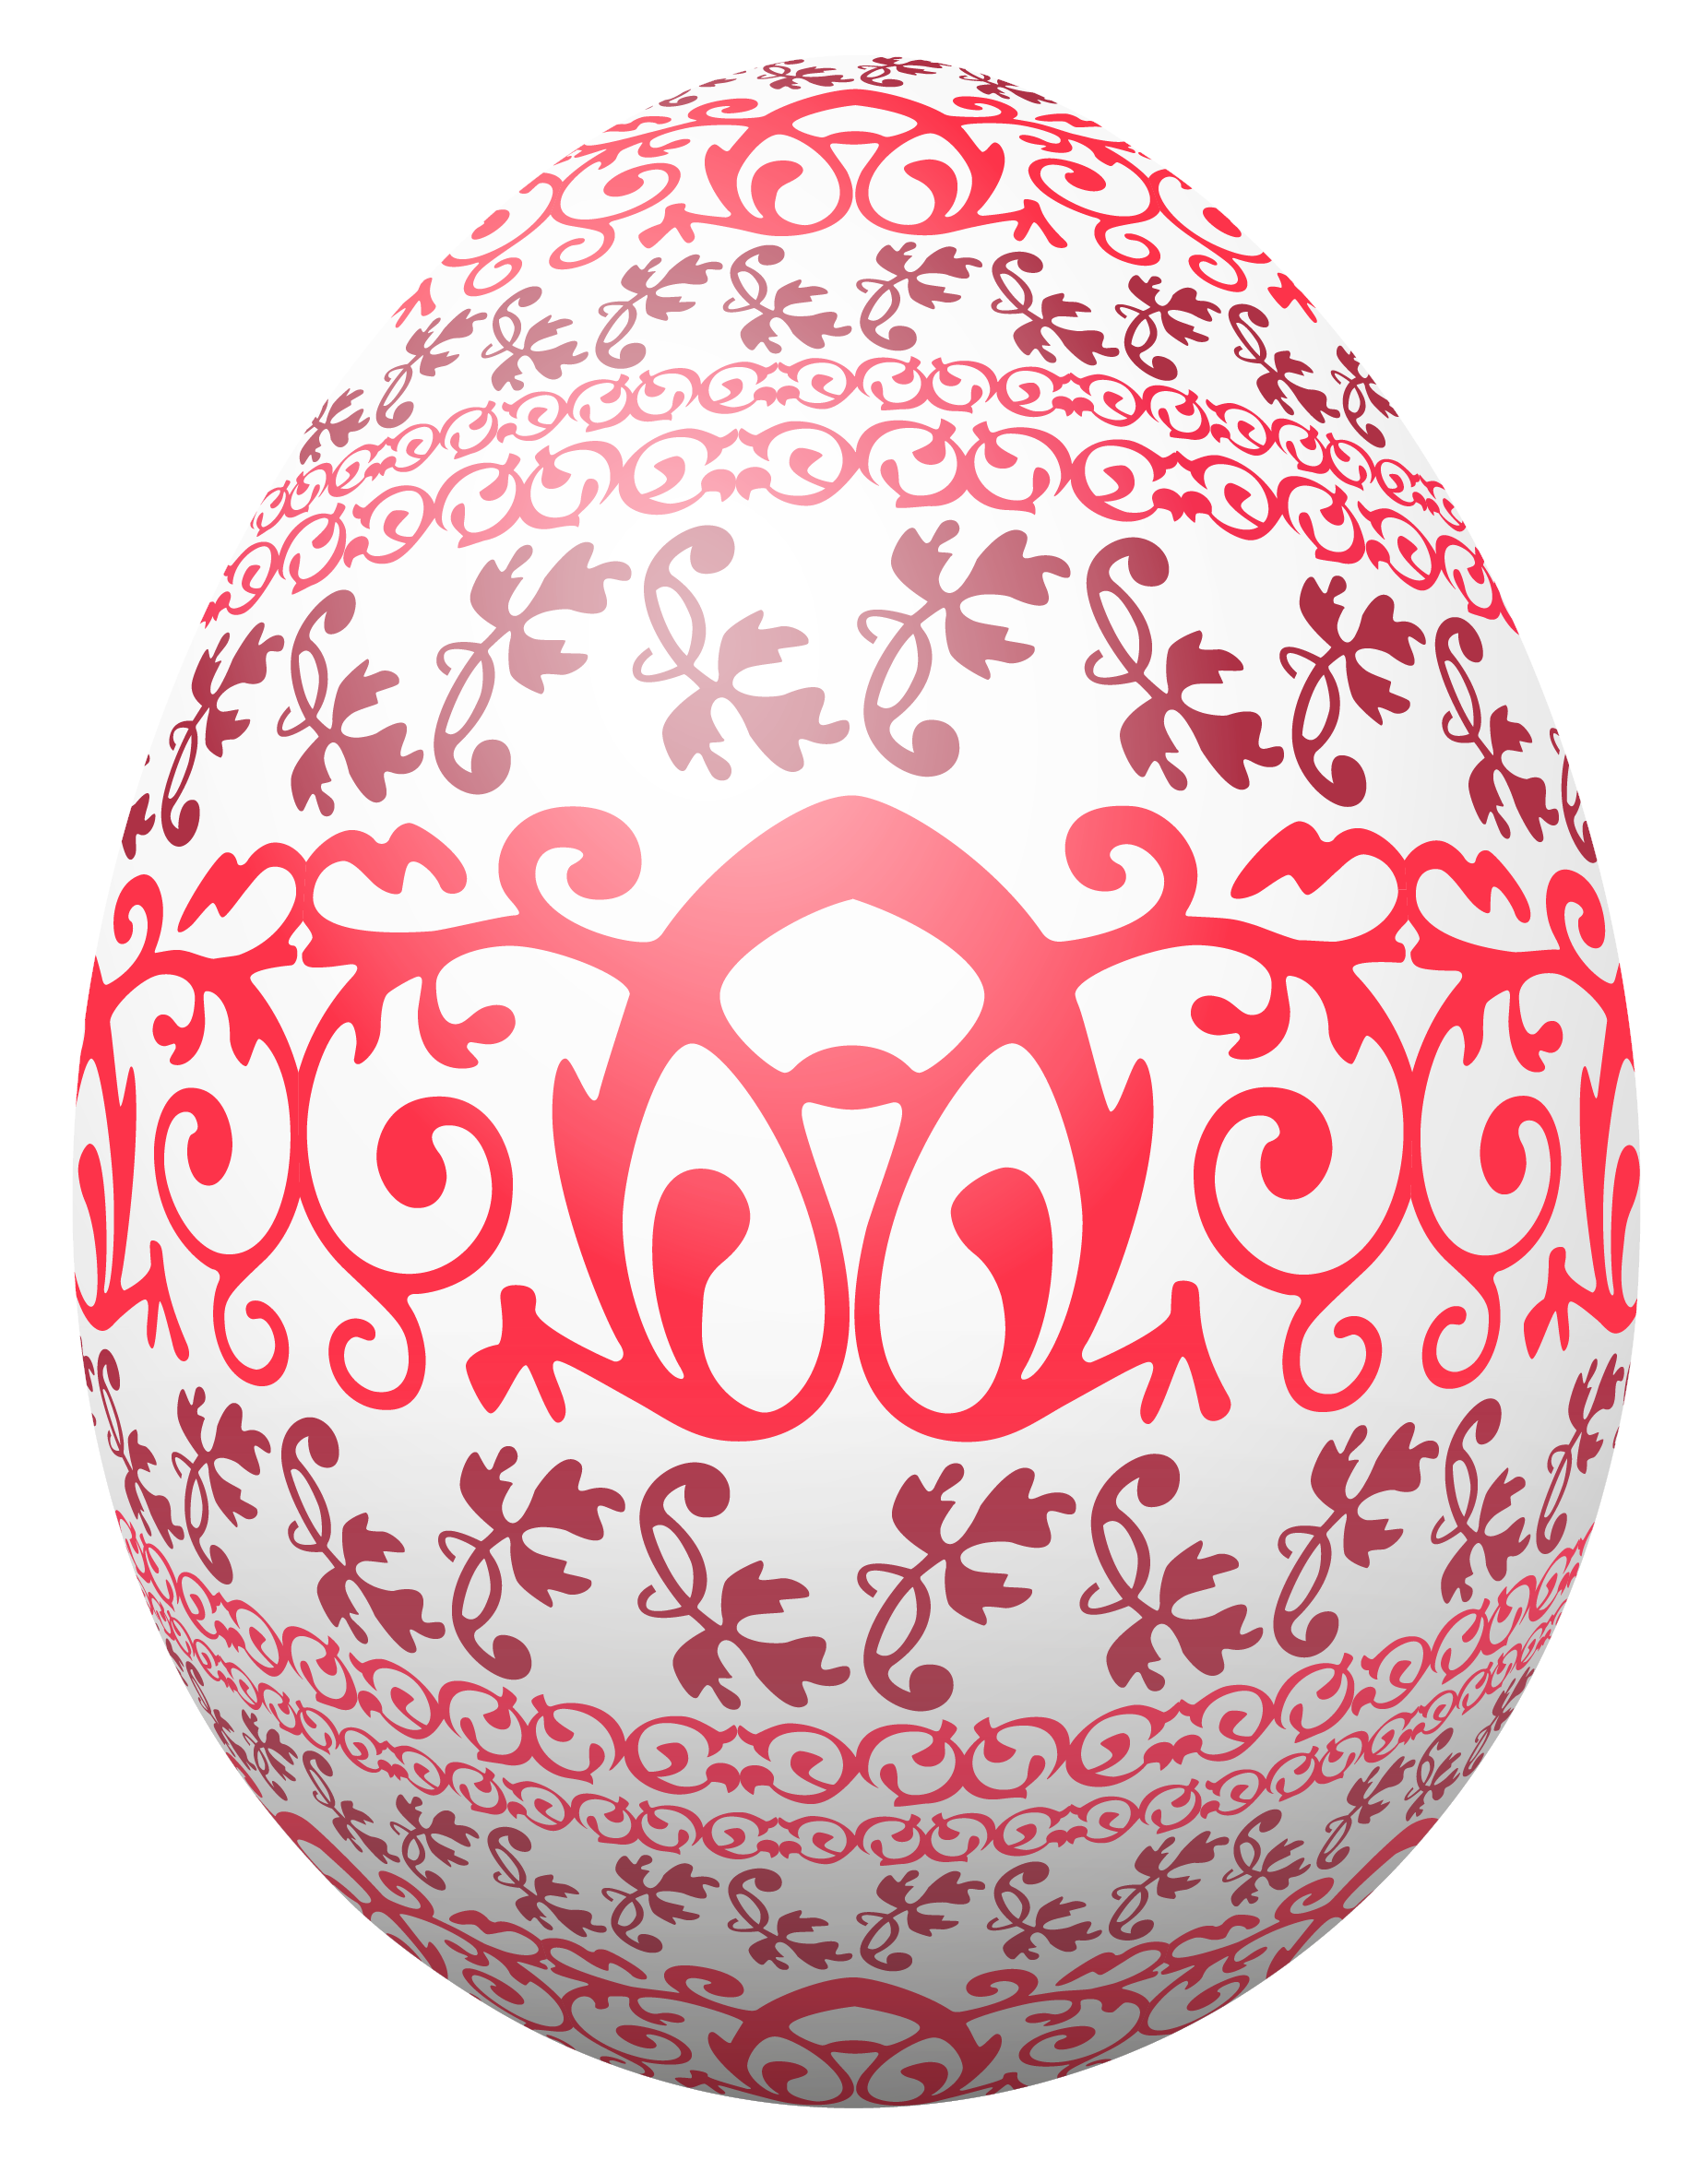 Easter egg designs png. White with red decoration